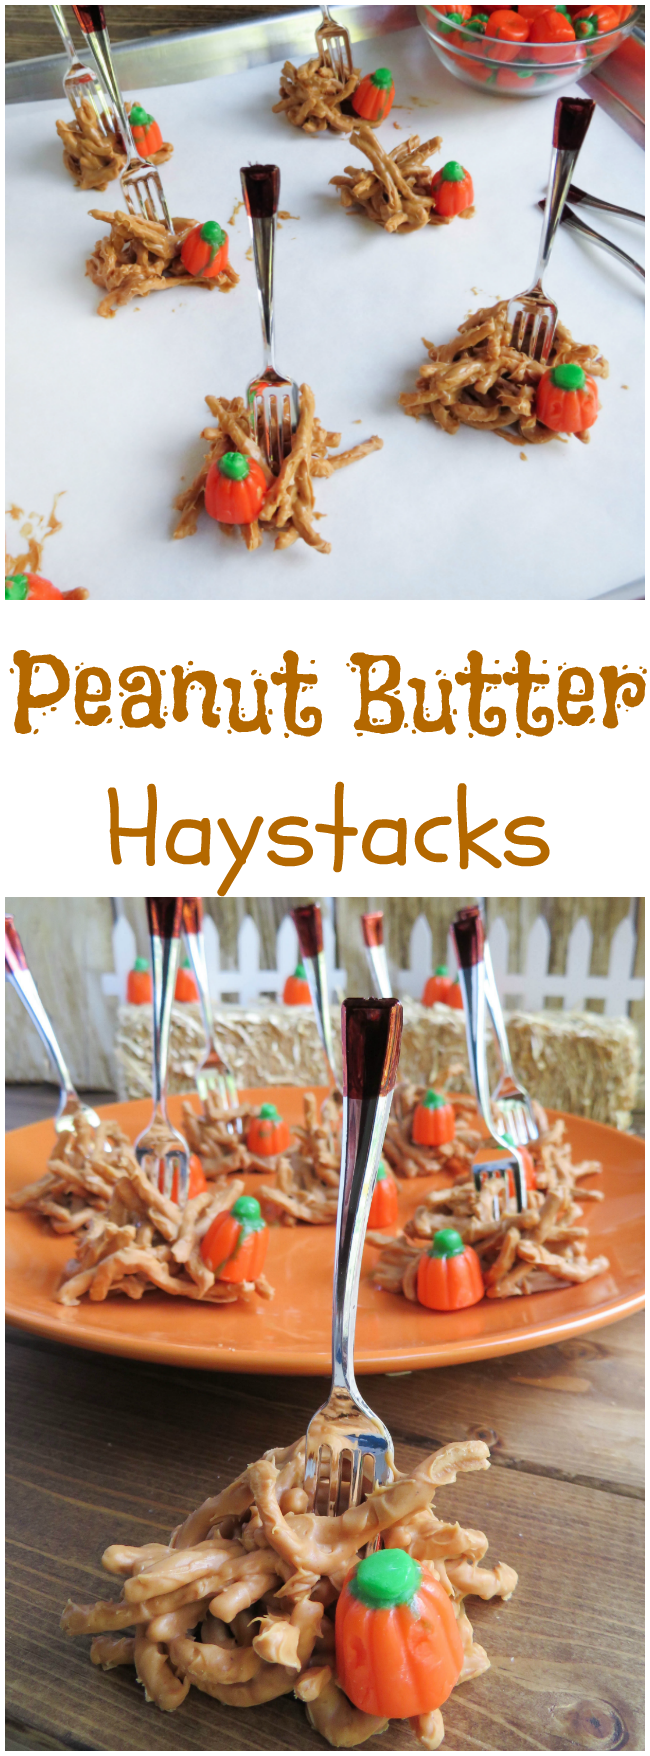 These are a fun and easy snack to make for Thanksgiving. The kids can even help make the Peanut Butter Haystacks recipe and everyone will love them.